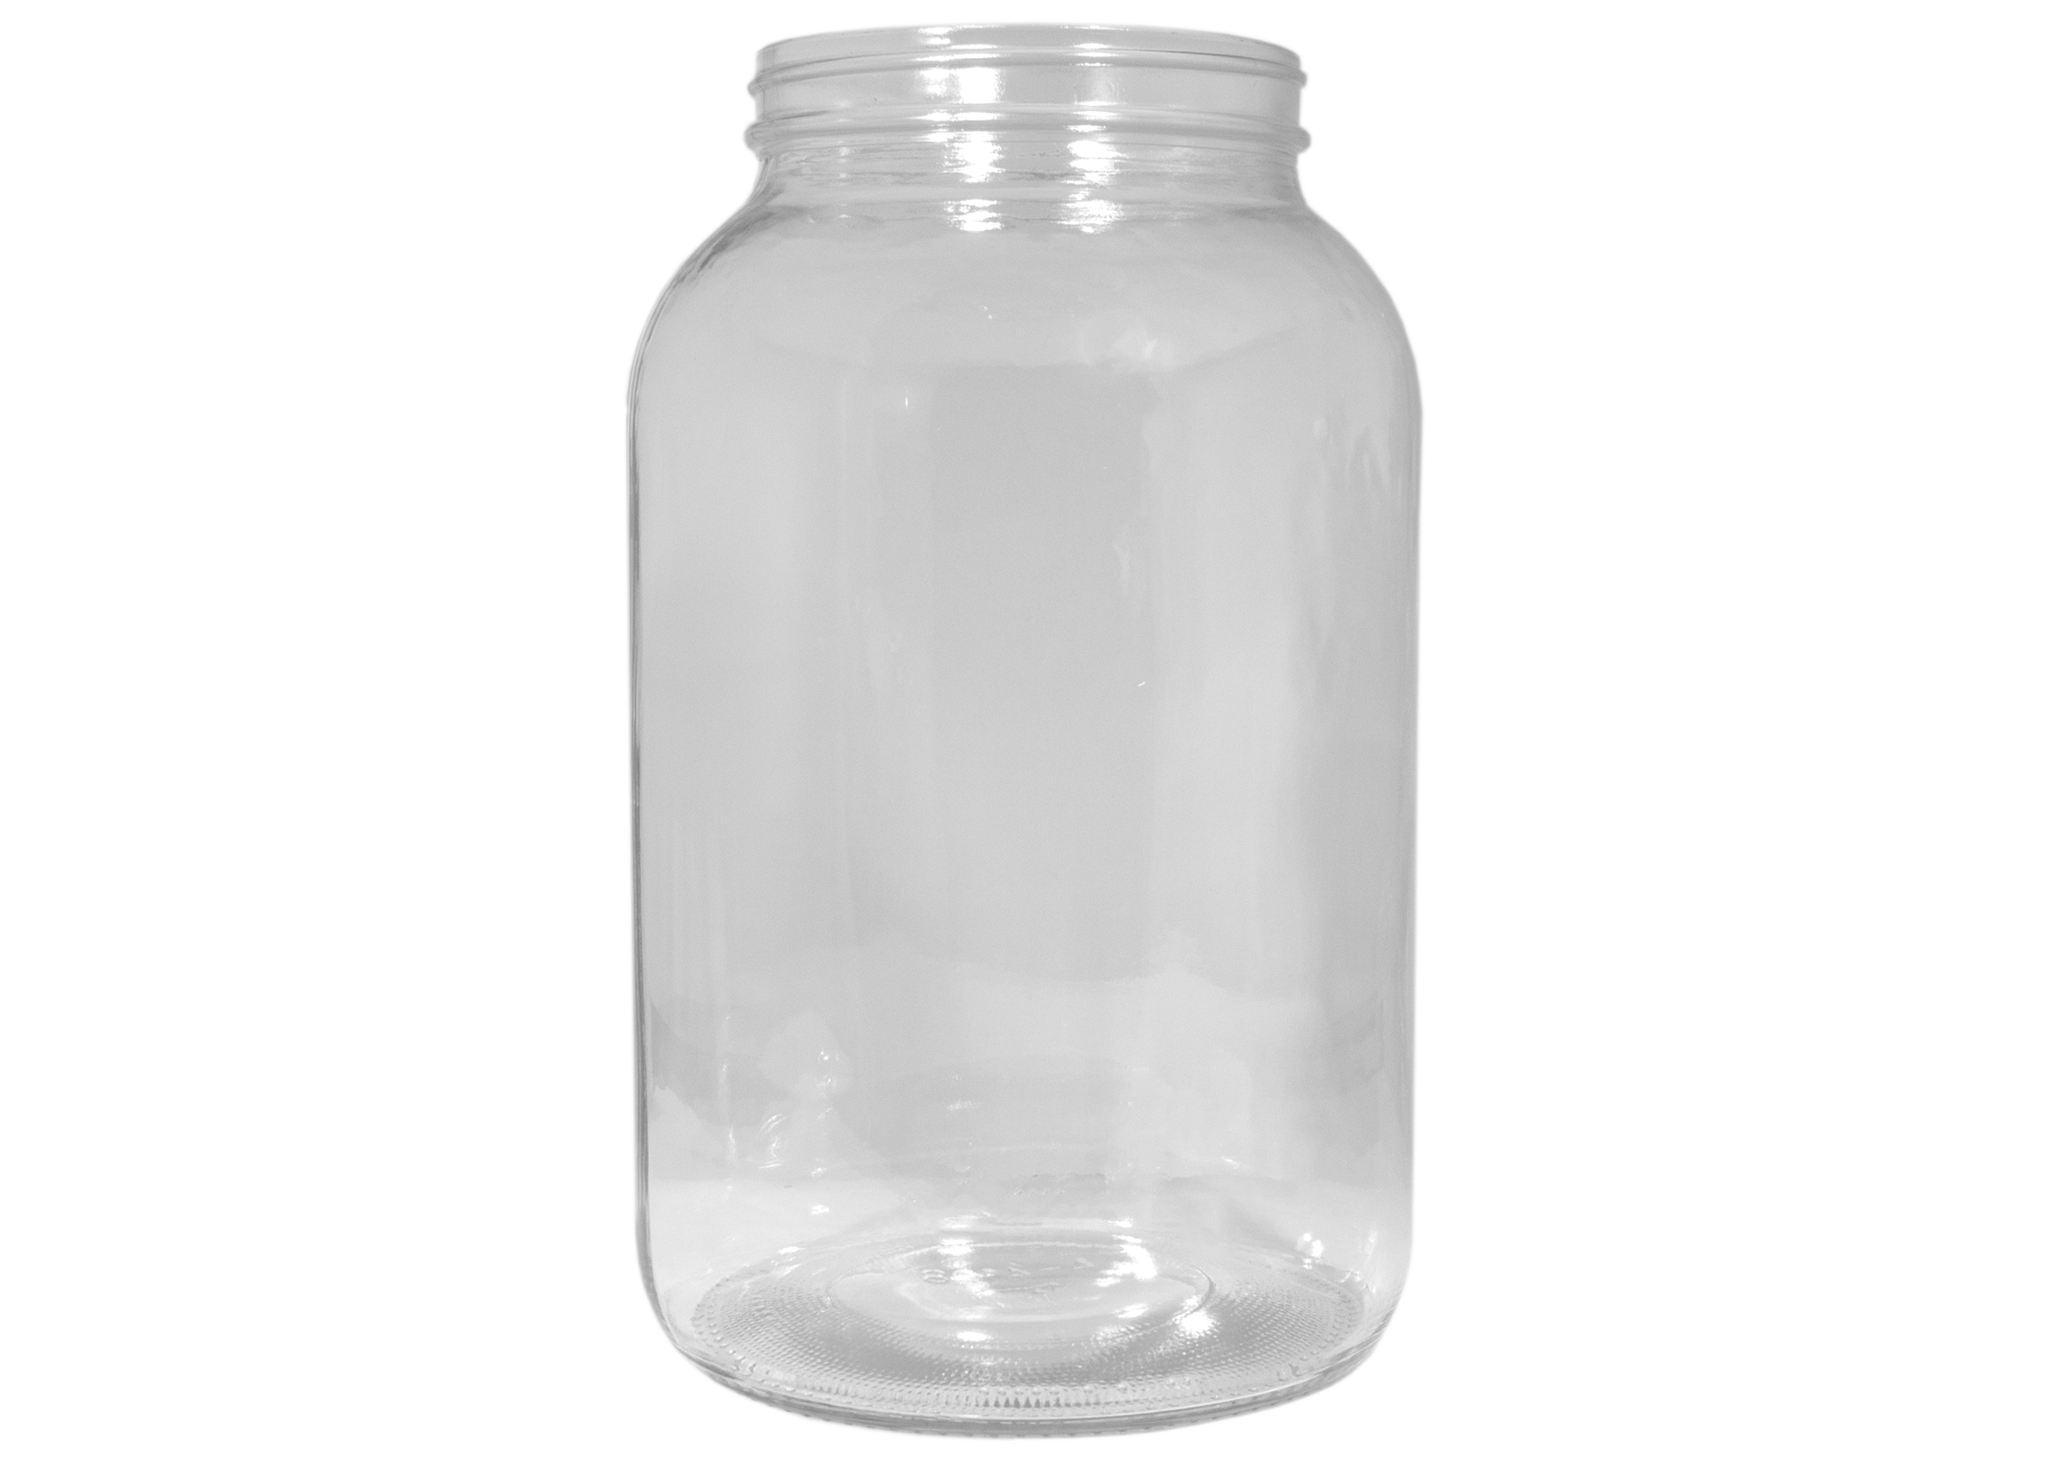 Transparent jar 1 gal. Containers and lids glass